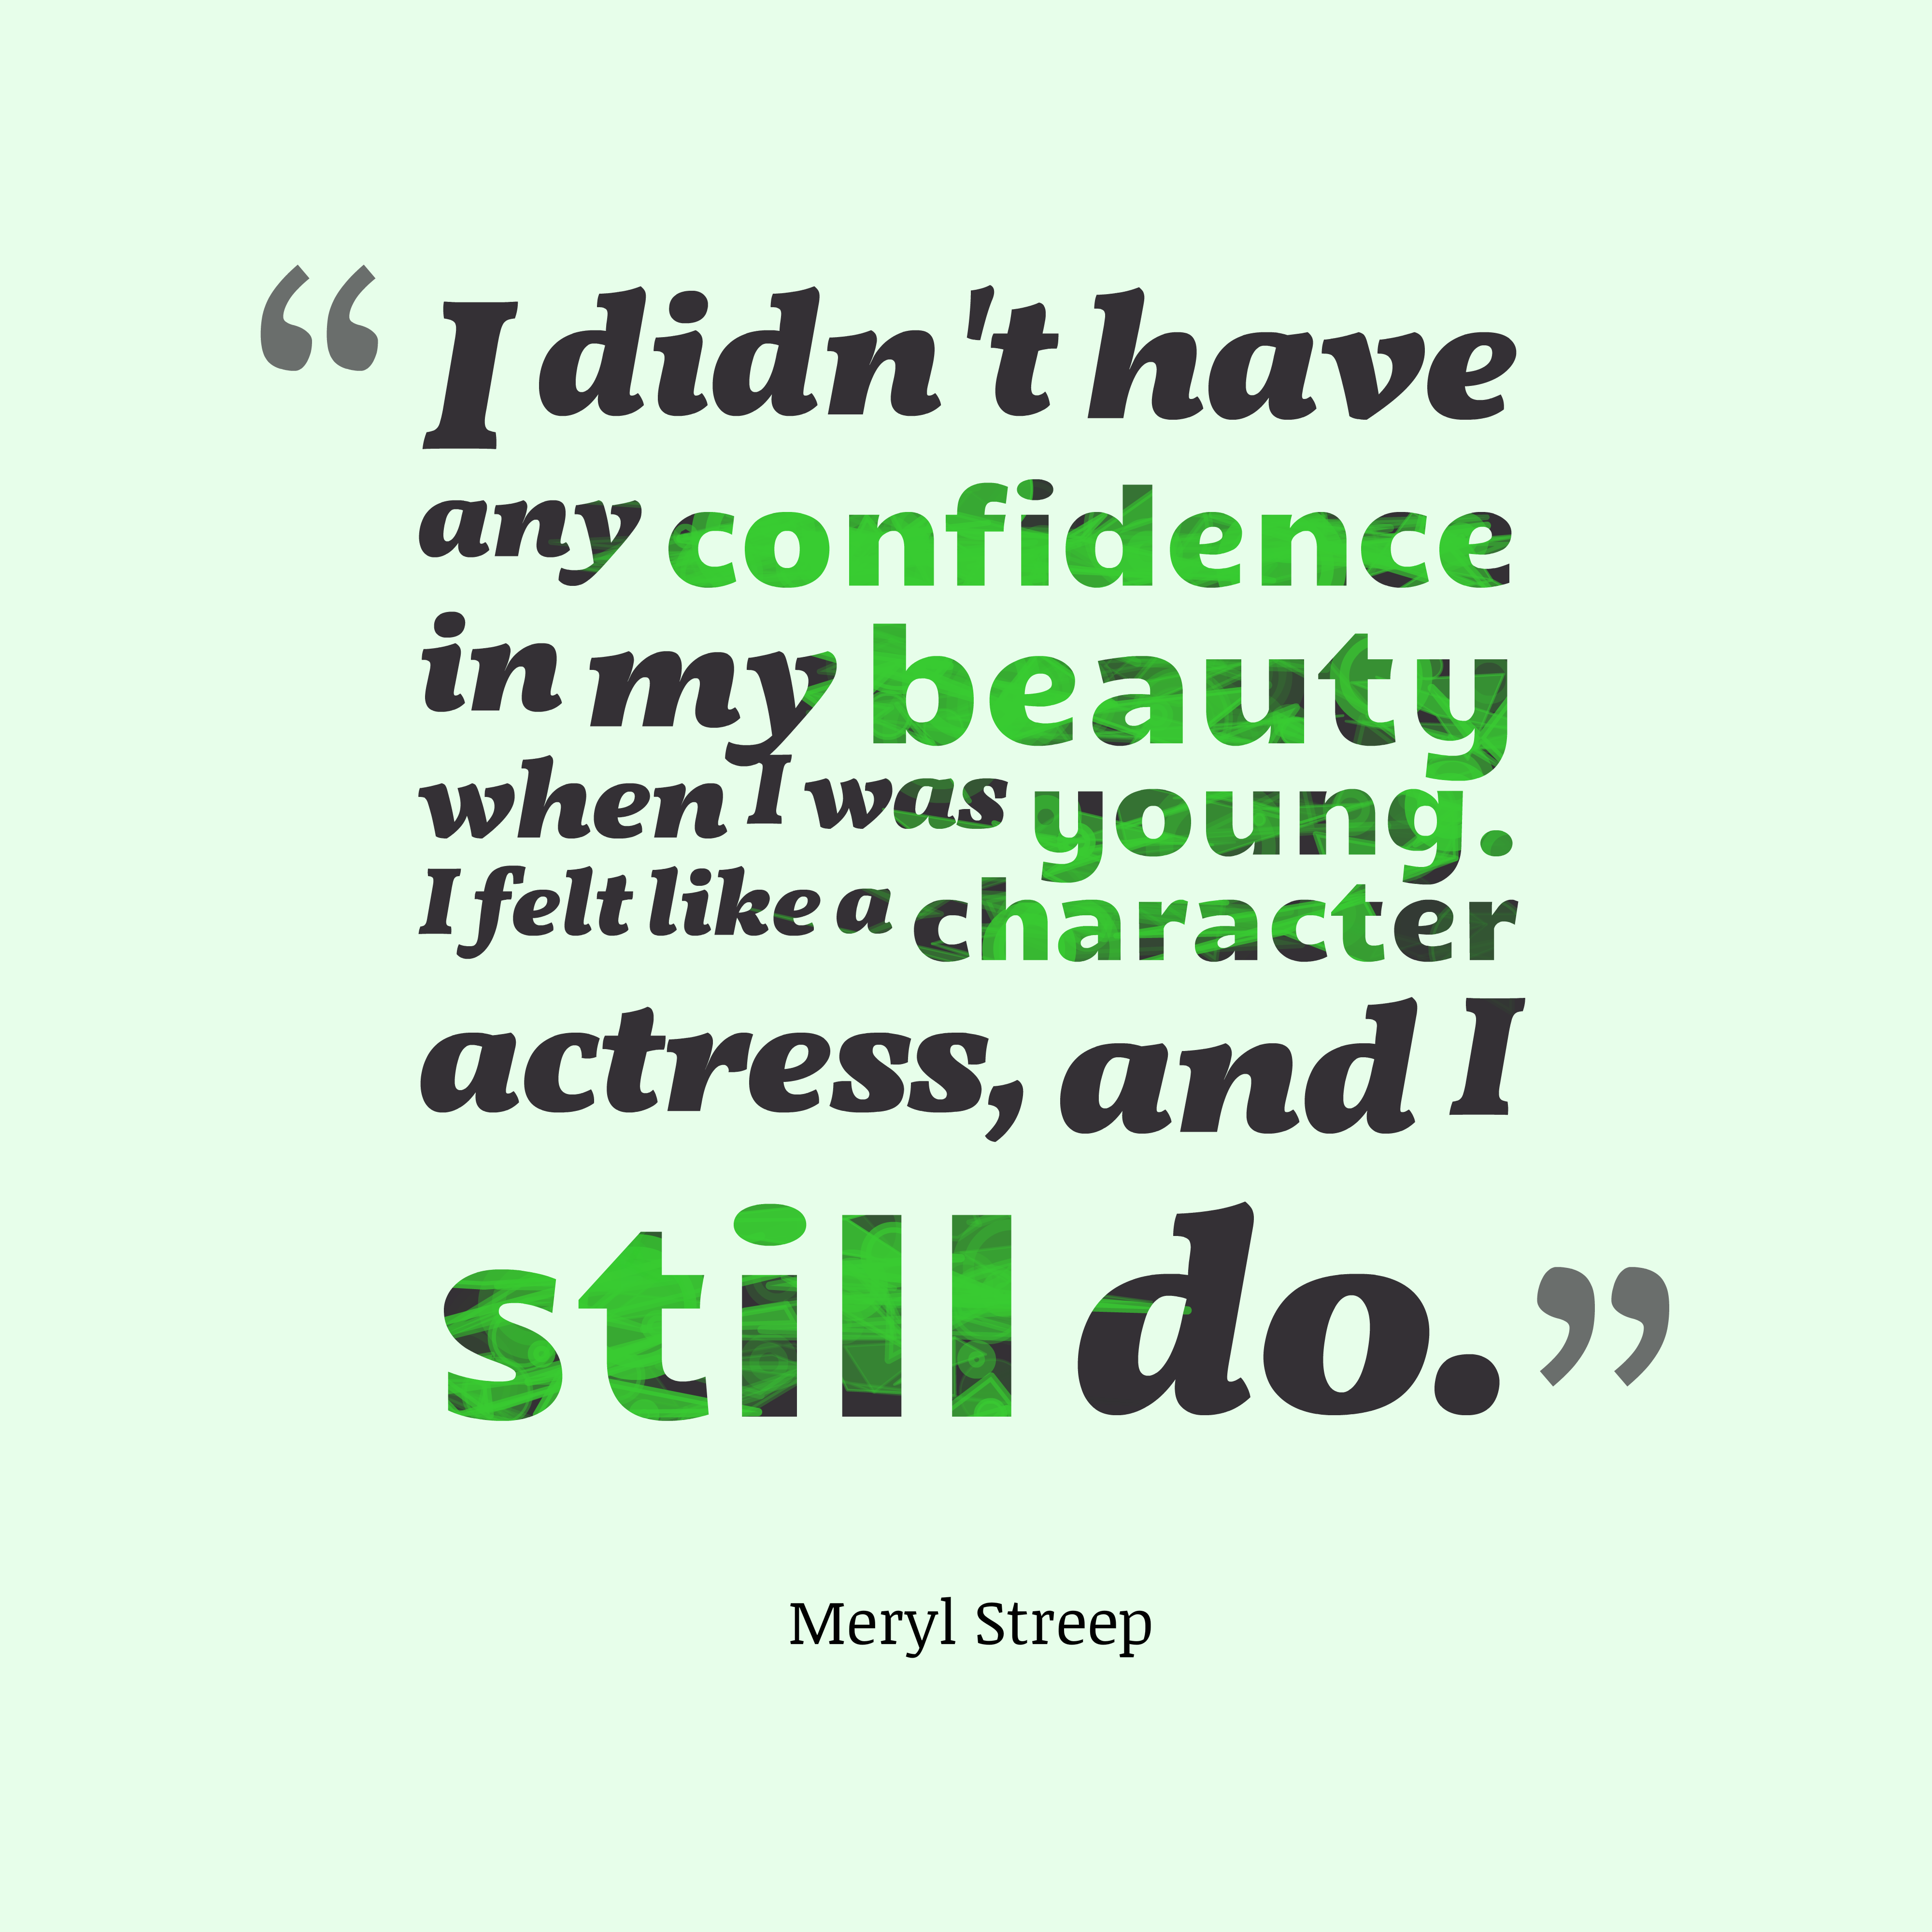 Quotes image of I didn't have any confidence in my beauty when I was young. I felt like a character actress, and I still do.